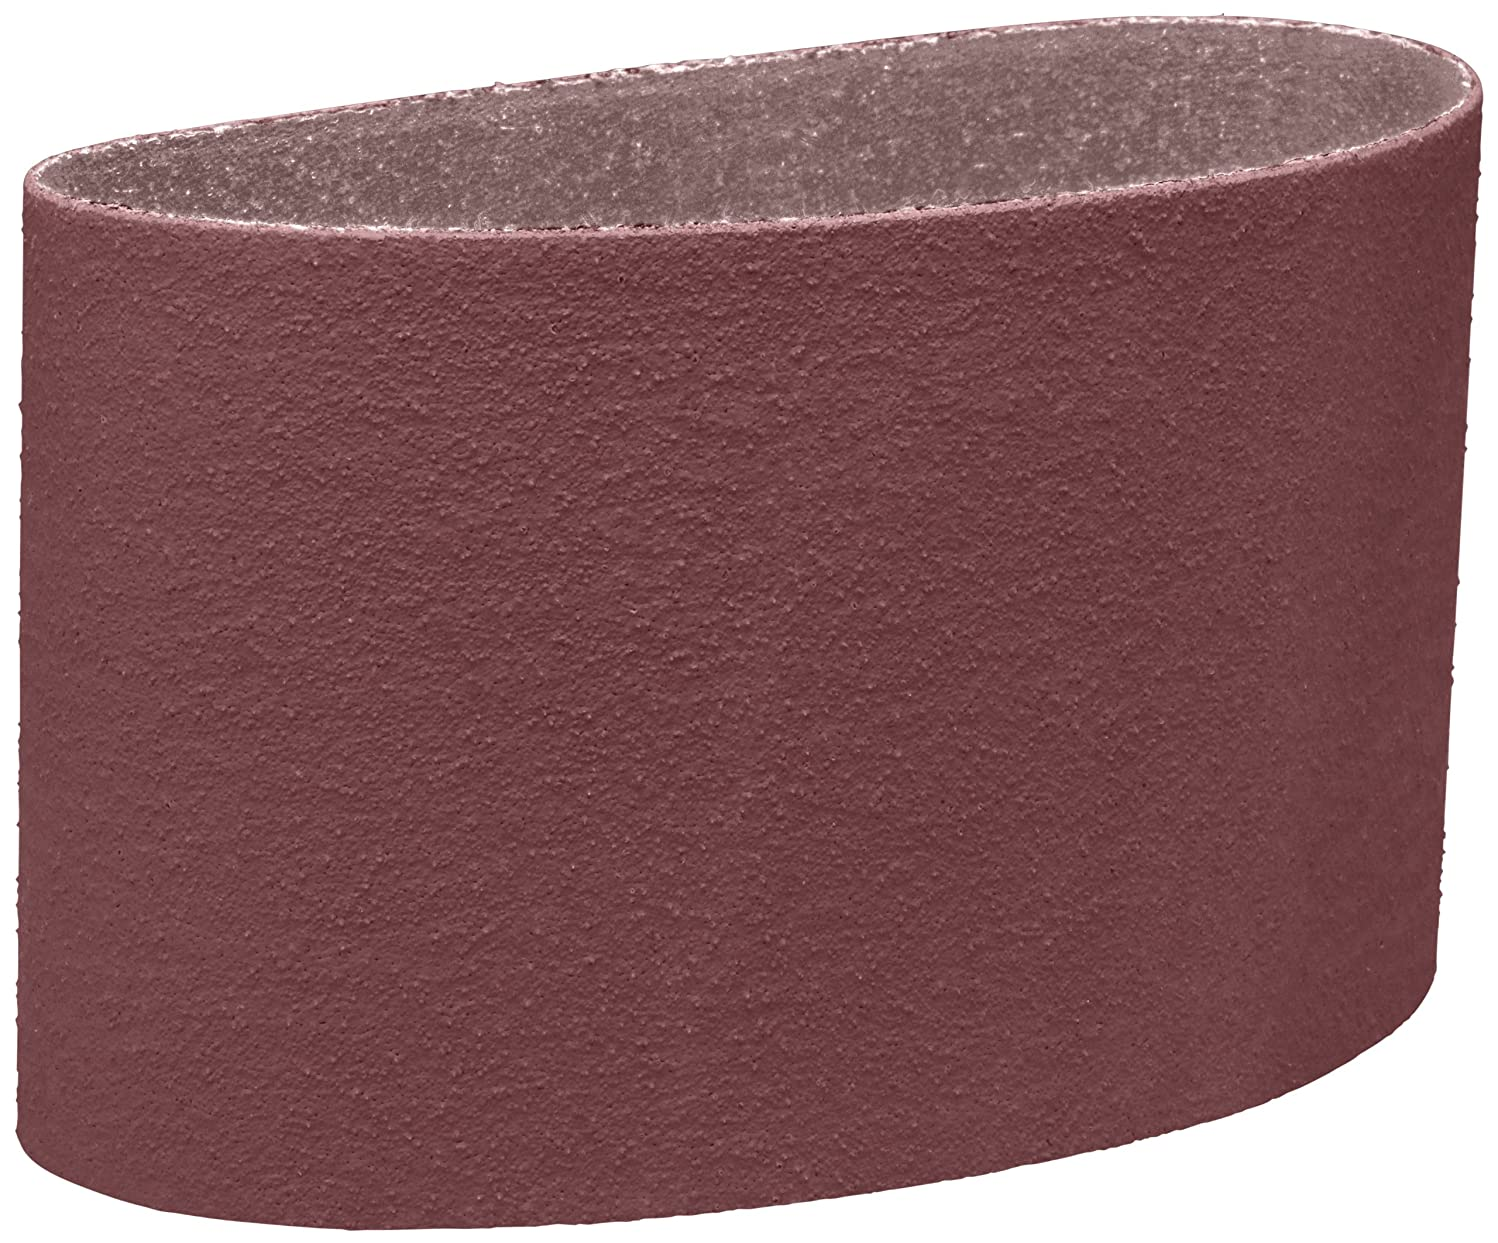 3M 341D Coated Aluminum Oxide Sanding Belt - 60 Grit - 6 in Width x 48 in Length - 66631 [PRICE is per BELT]